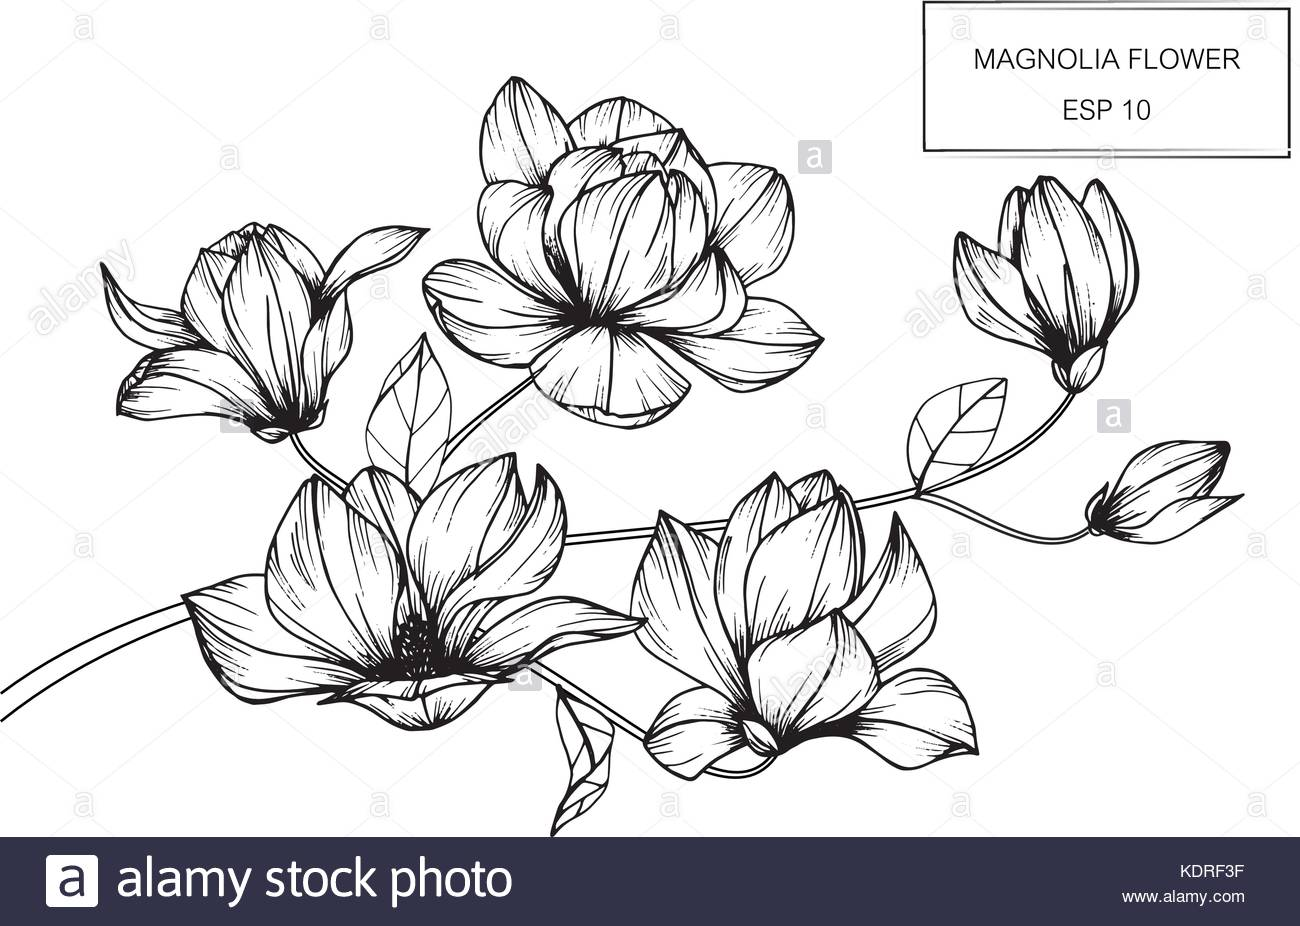 1300x926 Magnolia Flower Drawing Illustration. Black And White With Line